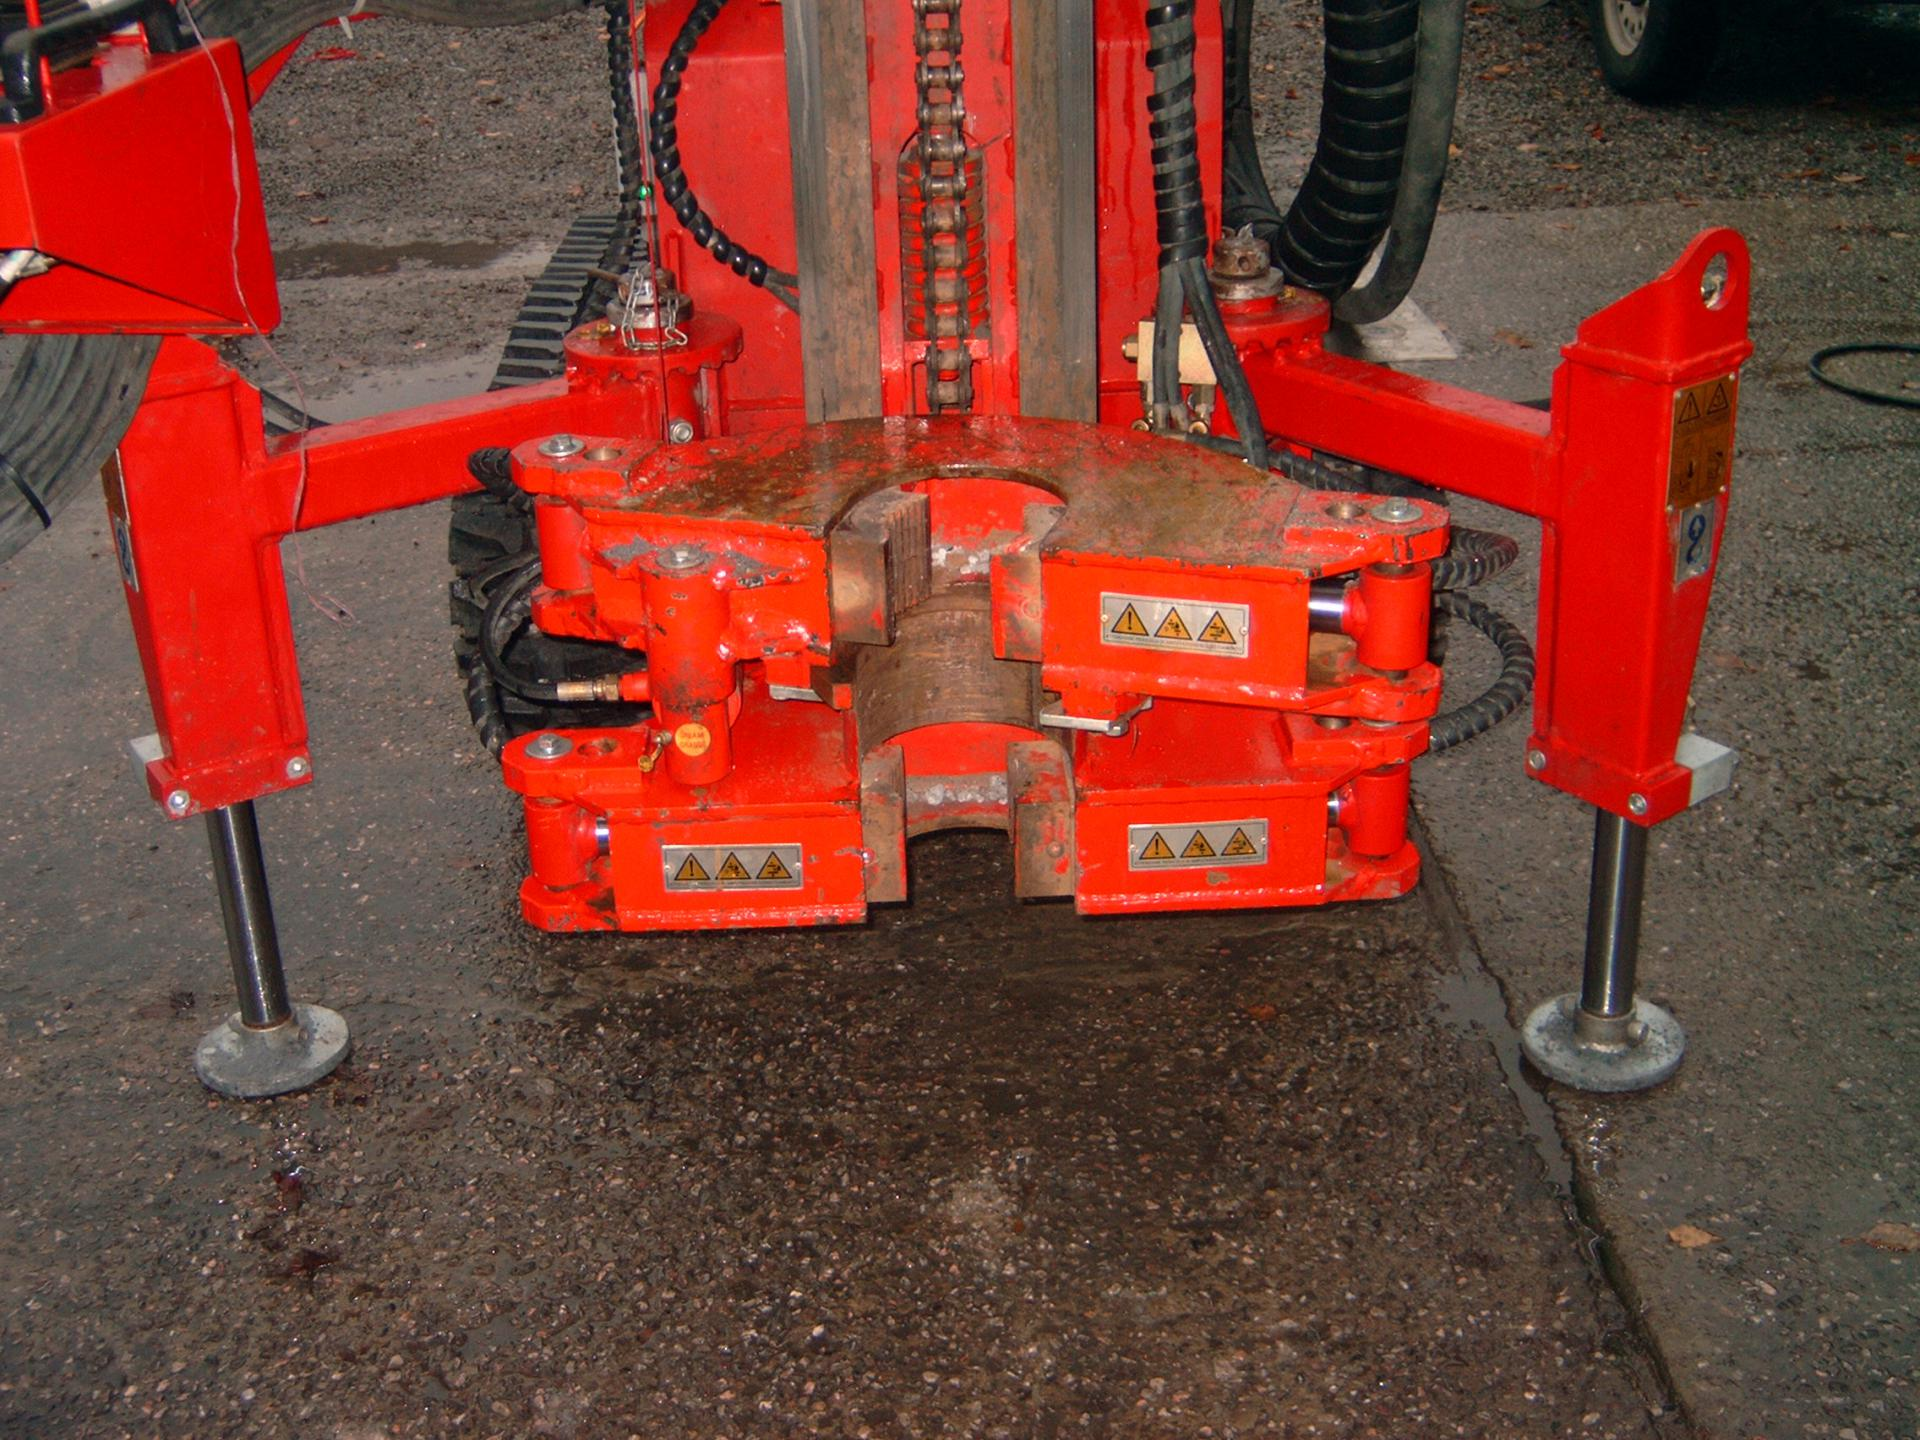 Stabilization jacks and double casing clamp for unscrewing tubes and casings